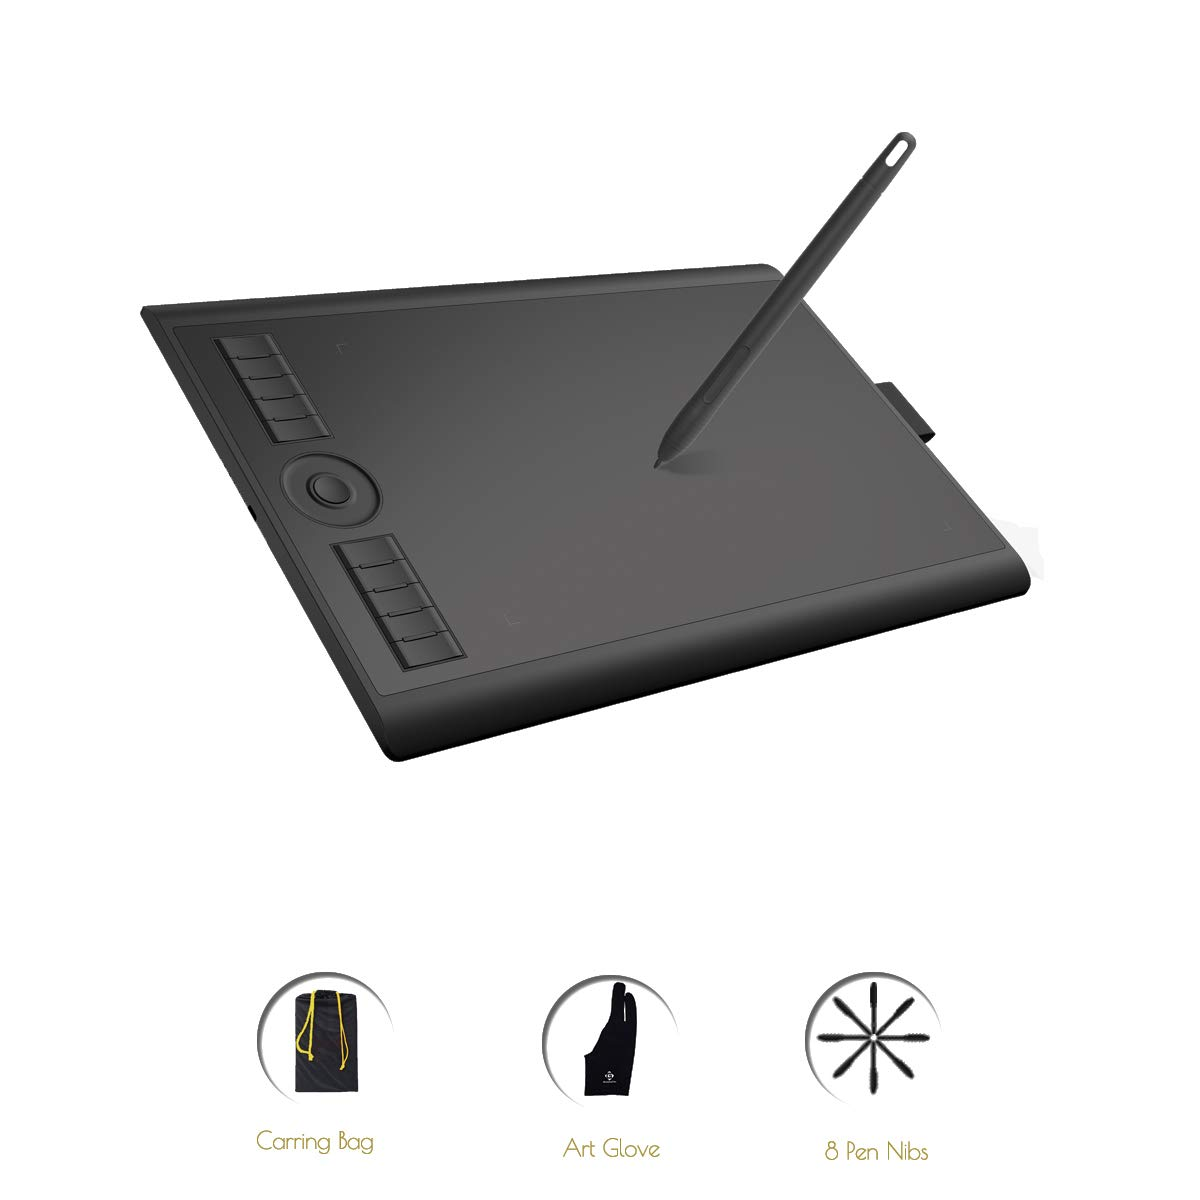 GAOMON M10K2018 Graphic Drawing Pen Tablet with 8 Nibs 1 Glove and 8192 Battery-Free Stylus -10 x 6.25 Inches